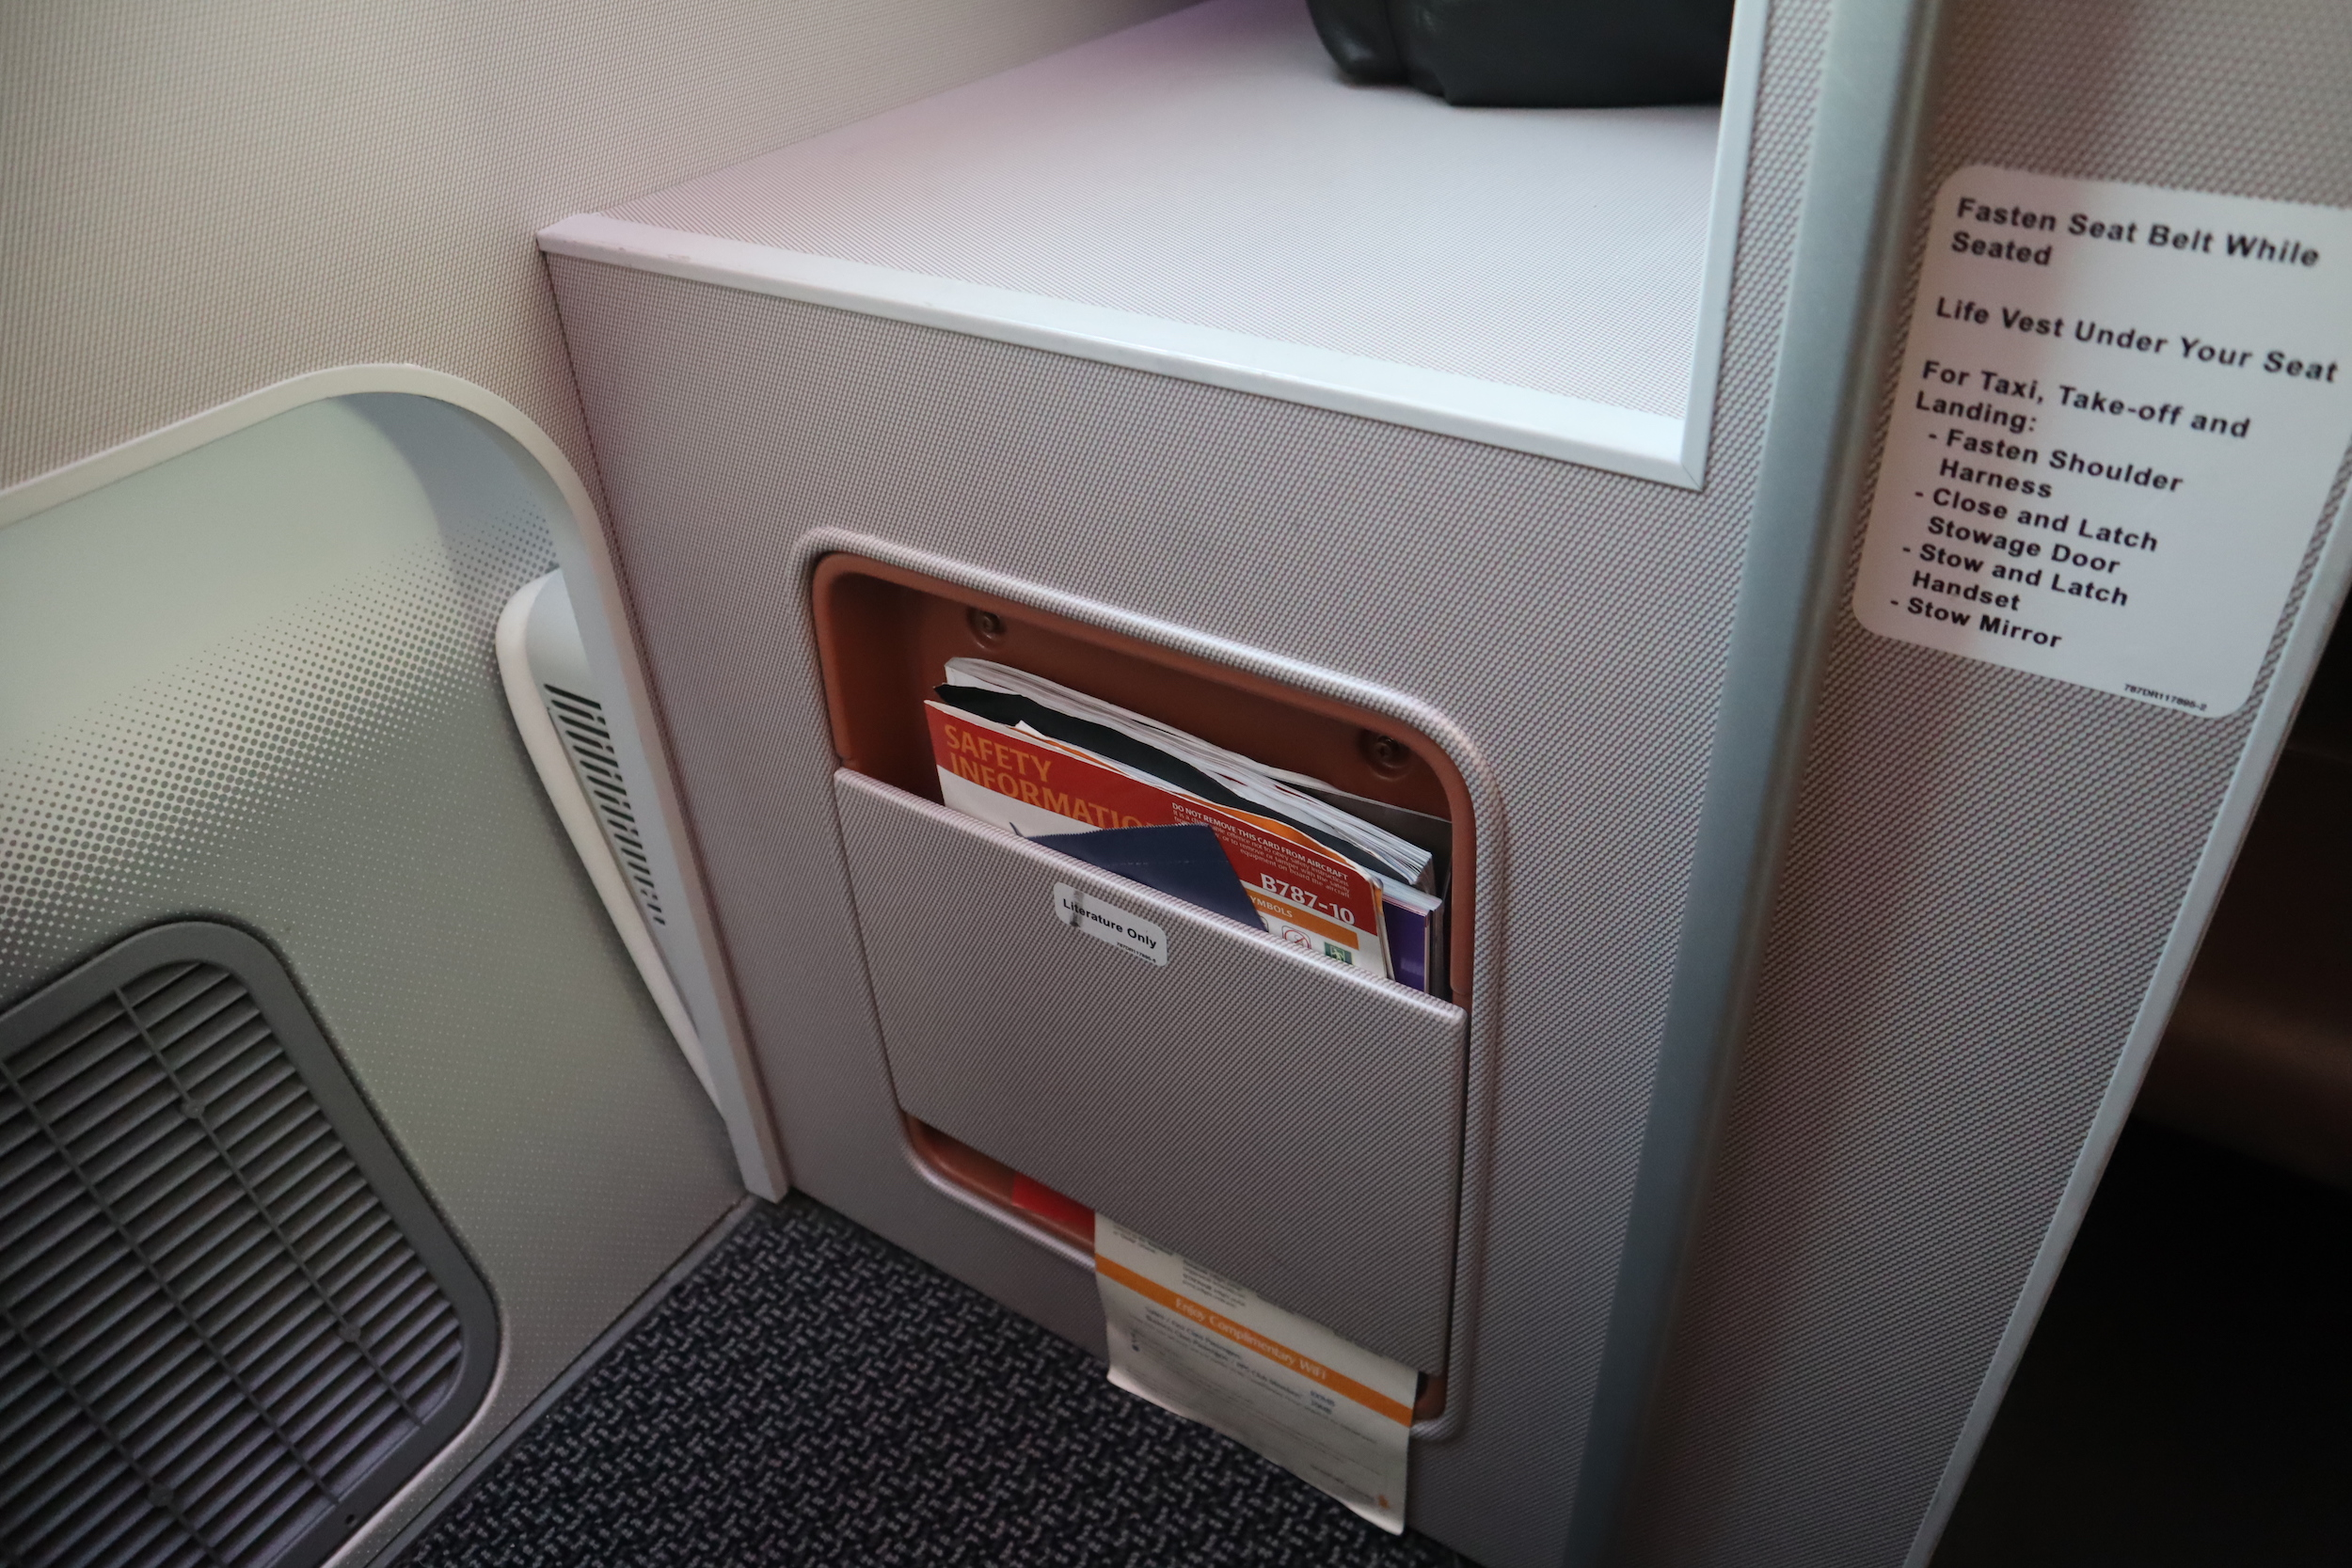 Singapore Airlines 787-10 business class – Literature pocket